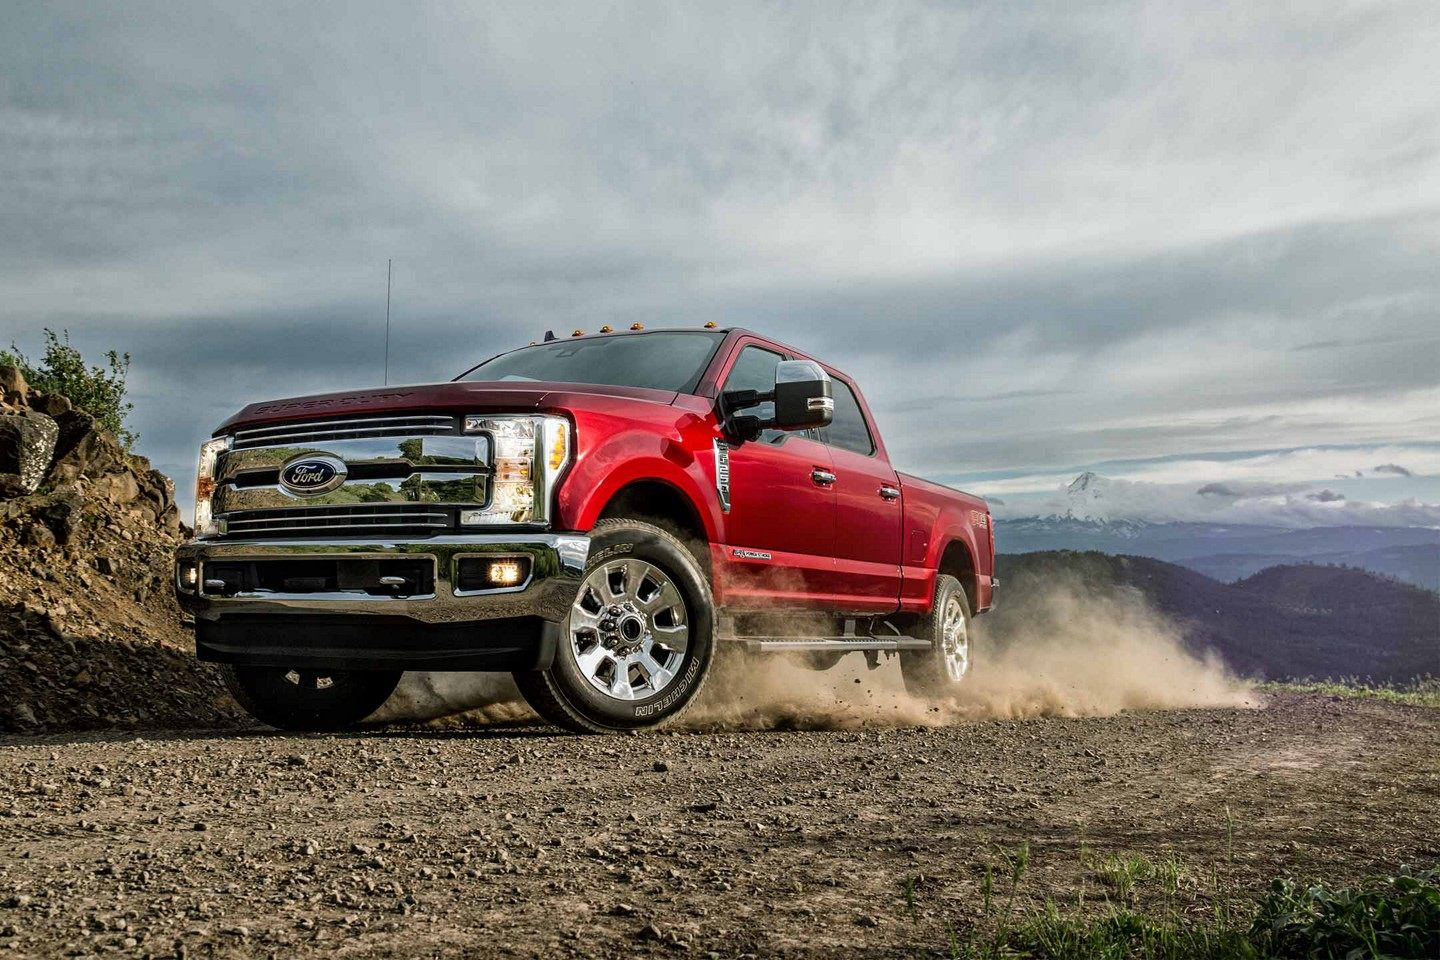 Which 2019 Ford F-250 Trim Level is Right for You? - Gulf Coast Ford